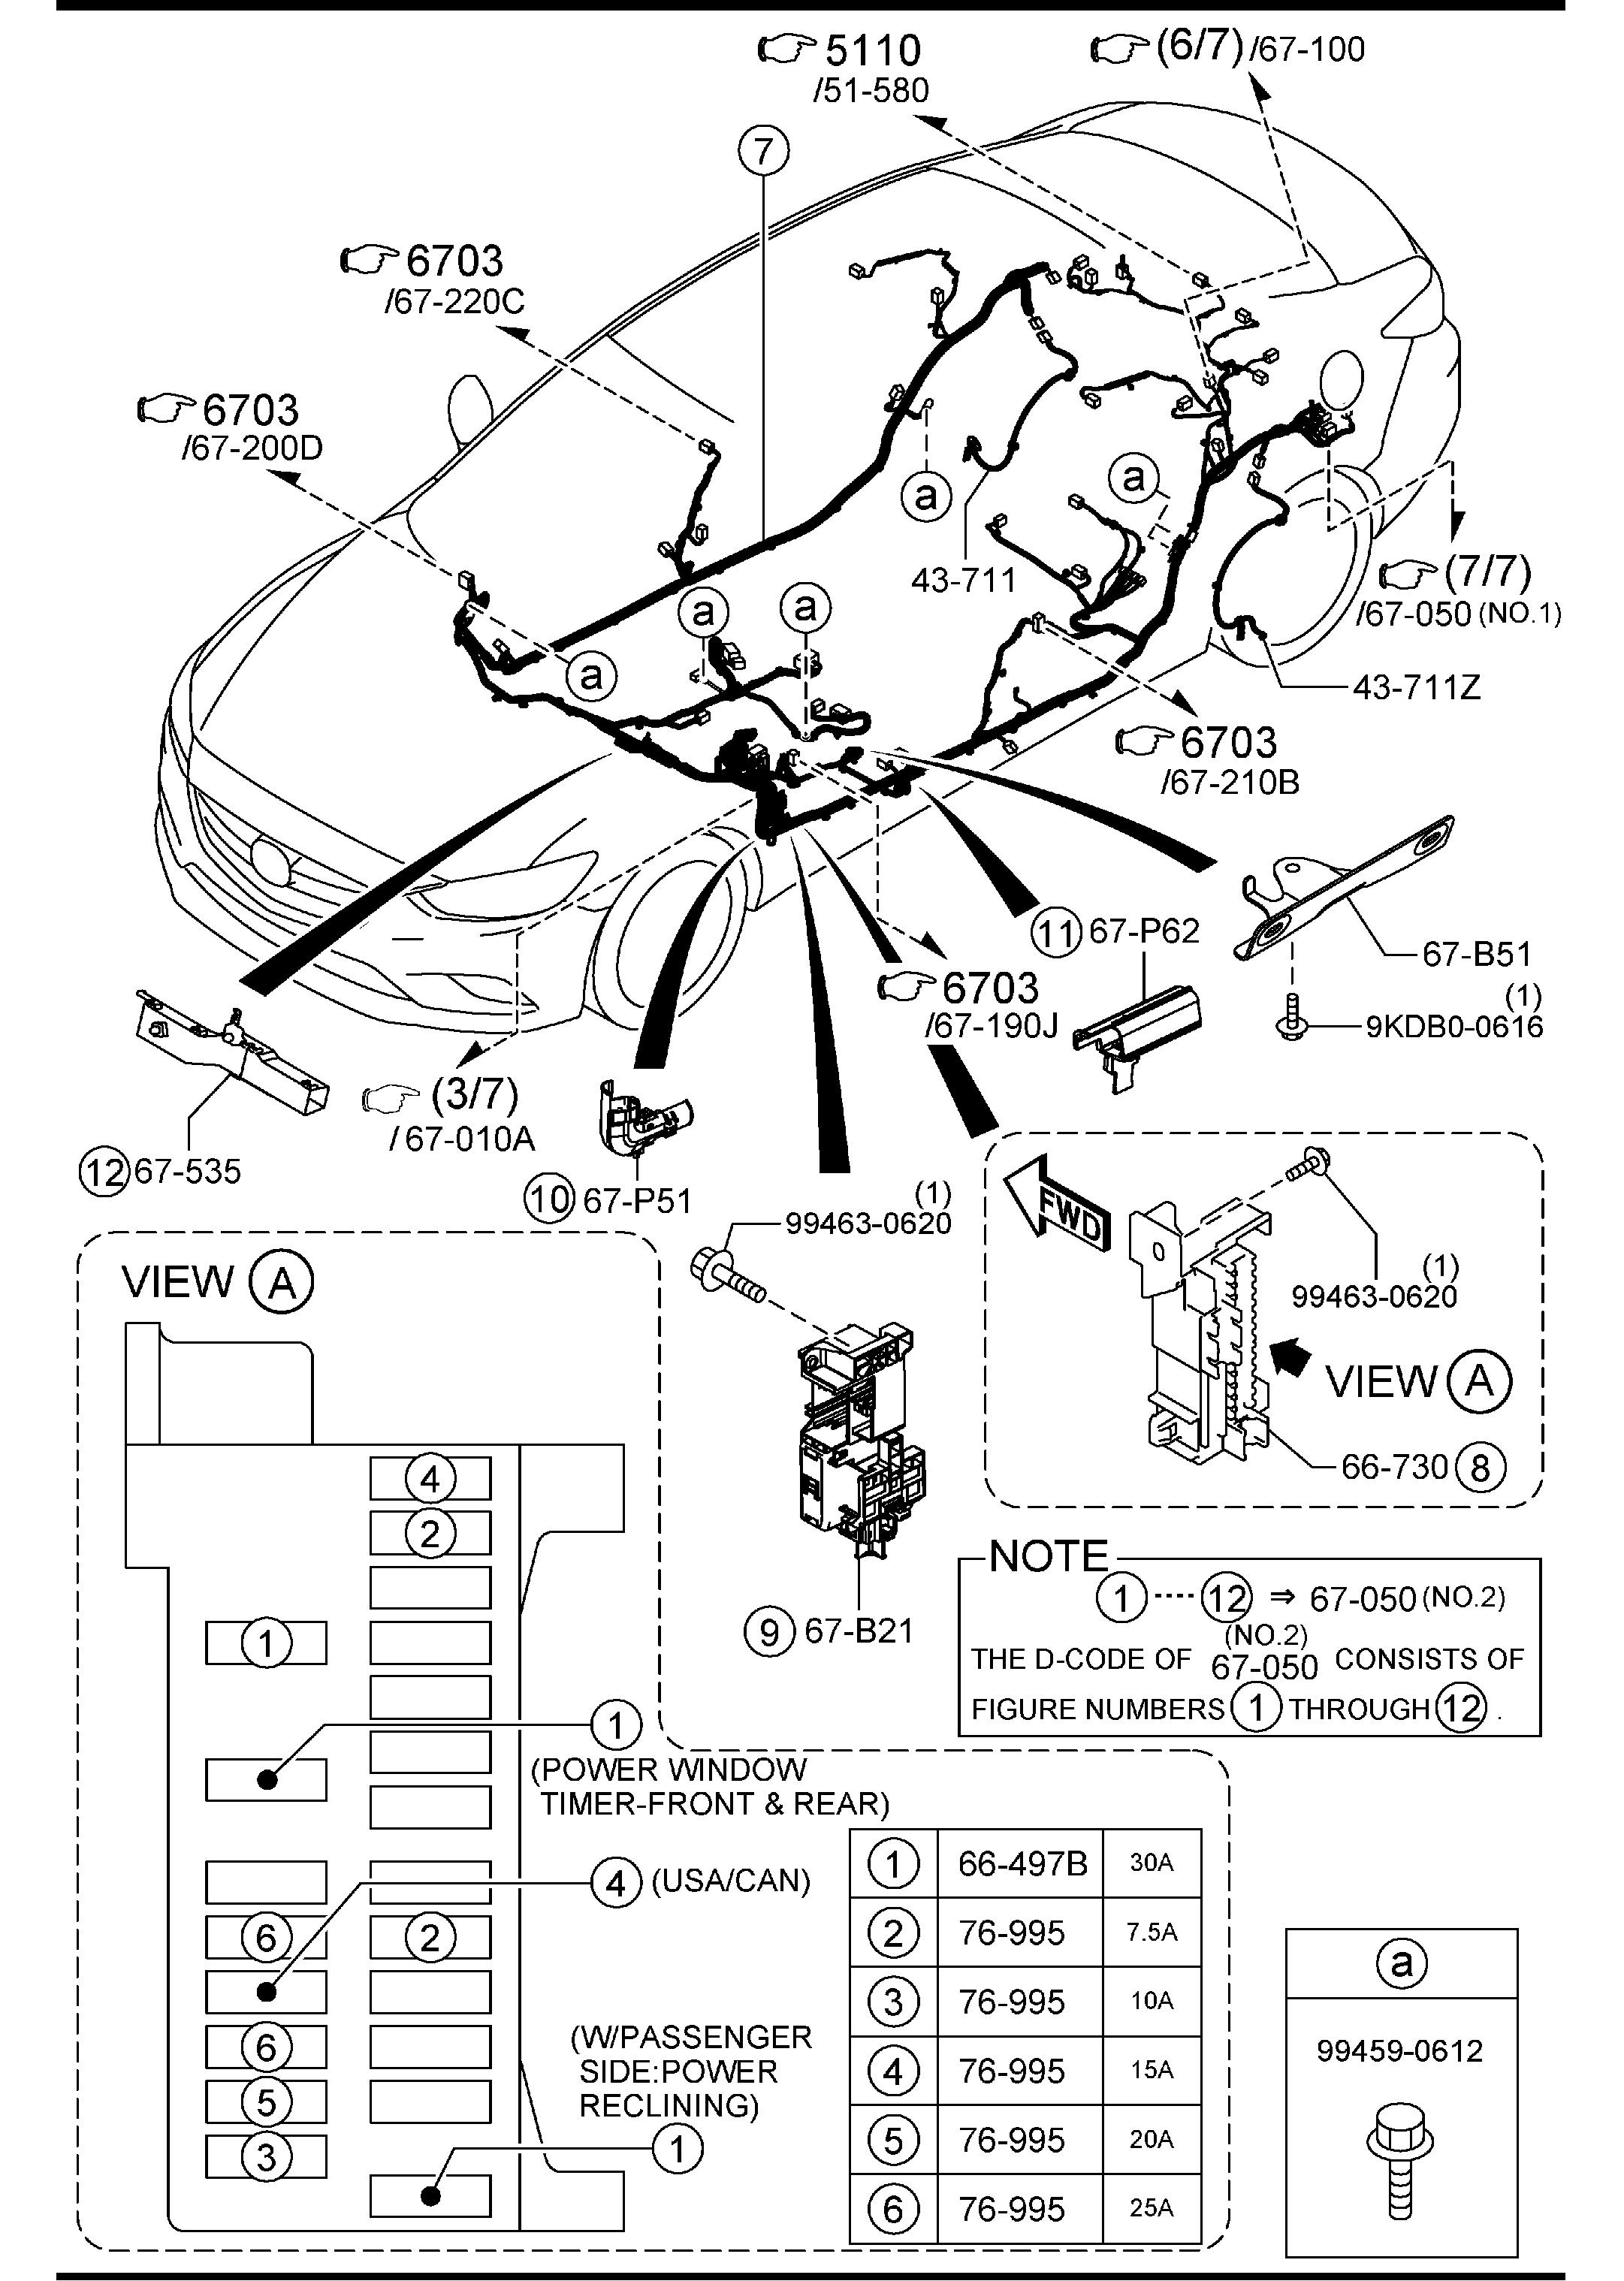 2014 Mazda 3 Wiring Harness Free Diagram For You Ford Mustang Power Window 6 Front Rear Harnesses 1966